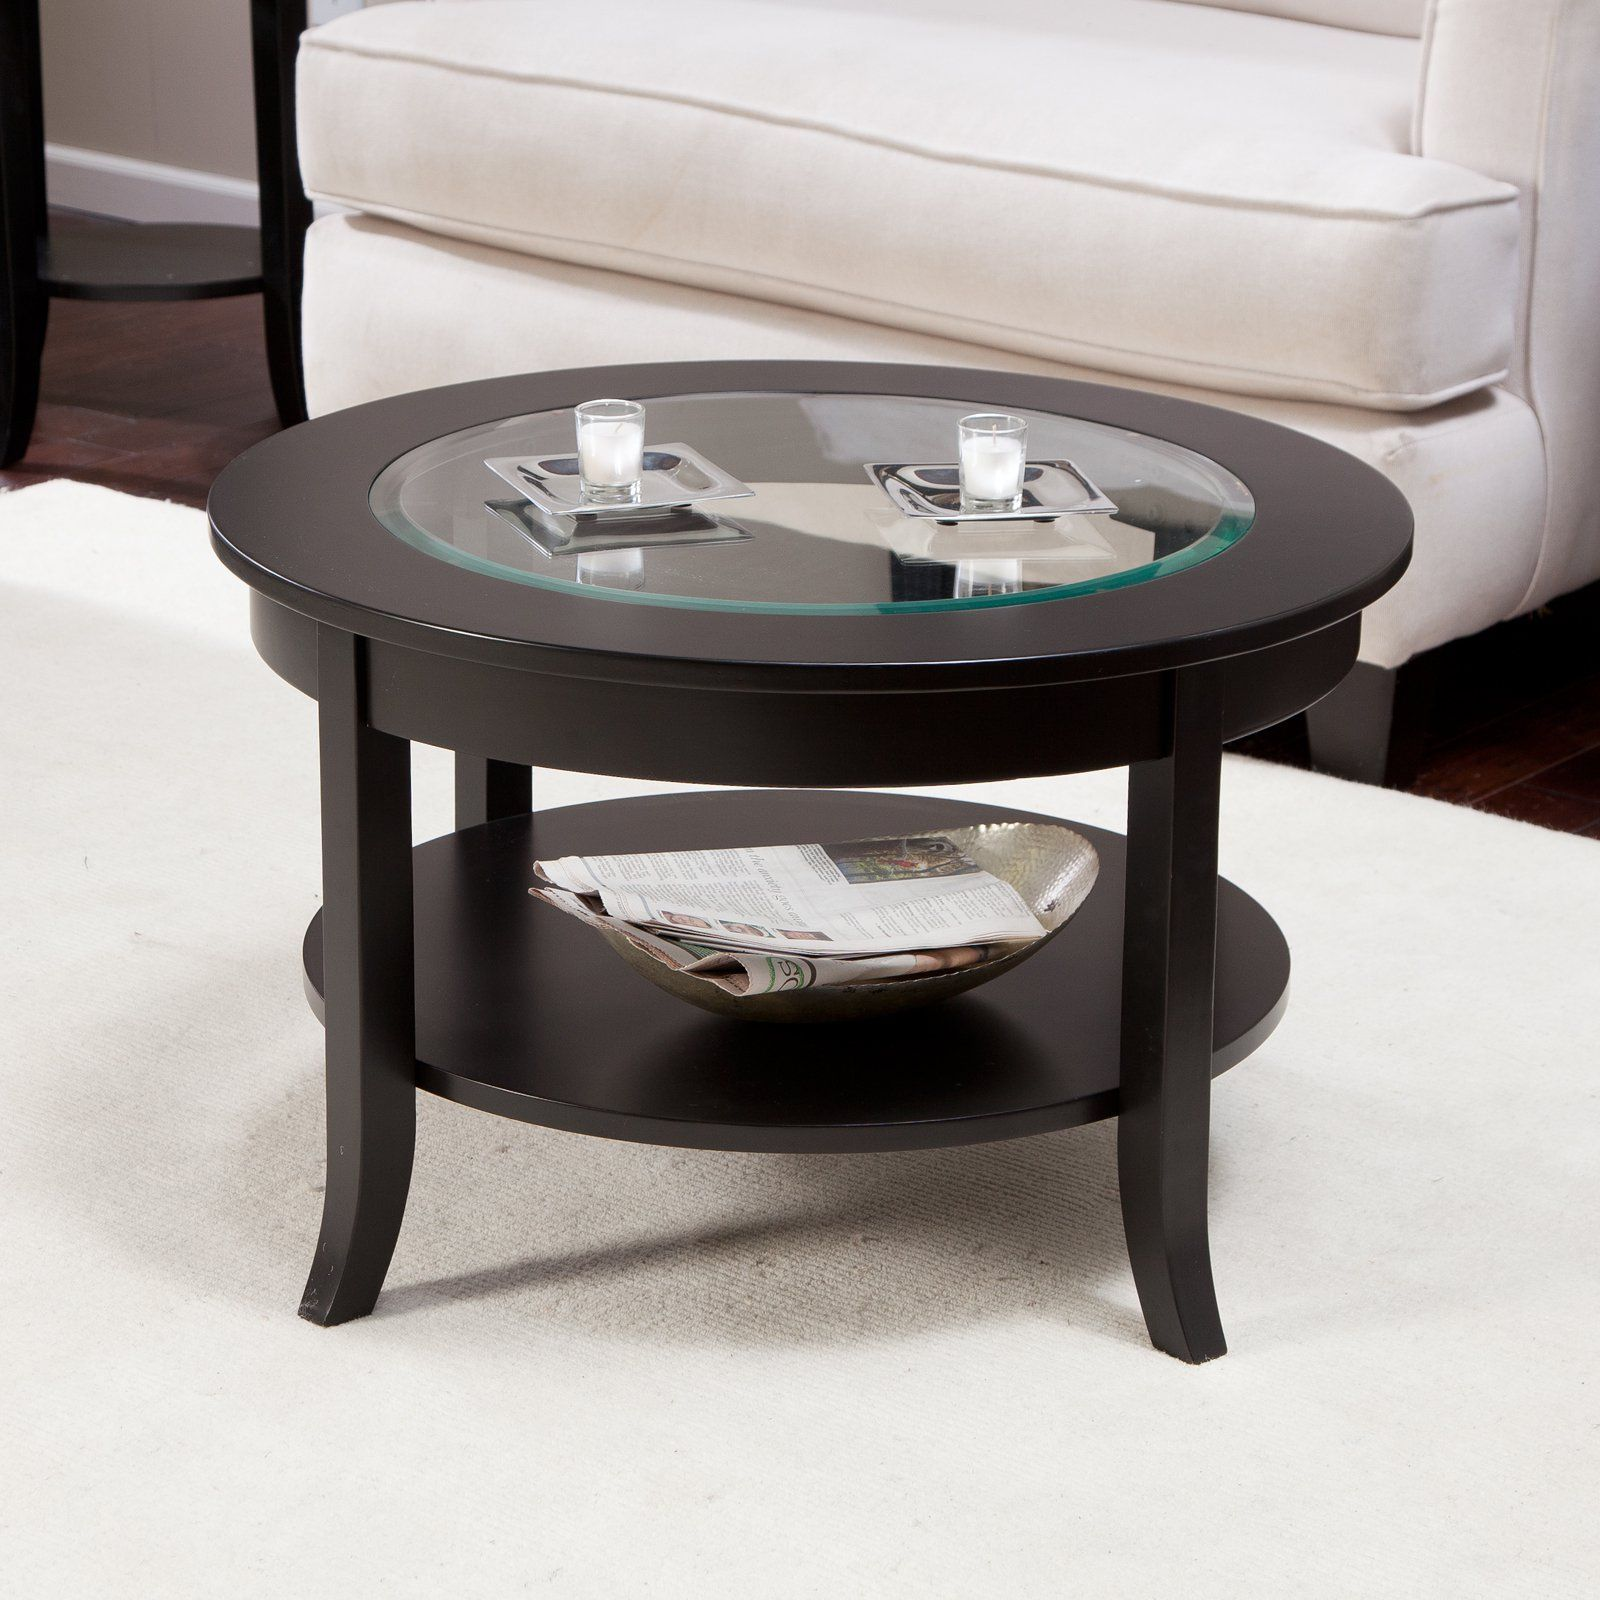 Incroyable Extra Small Coffee Table   Ashley Living Room Furniture Sets Check More At  Http:/